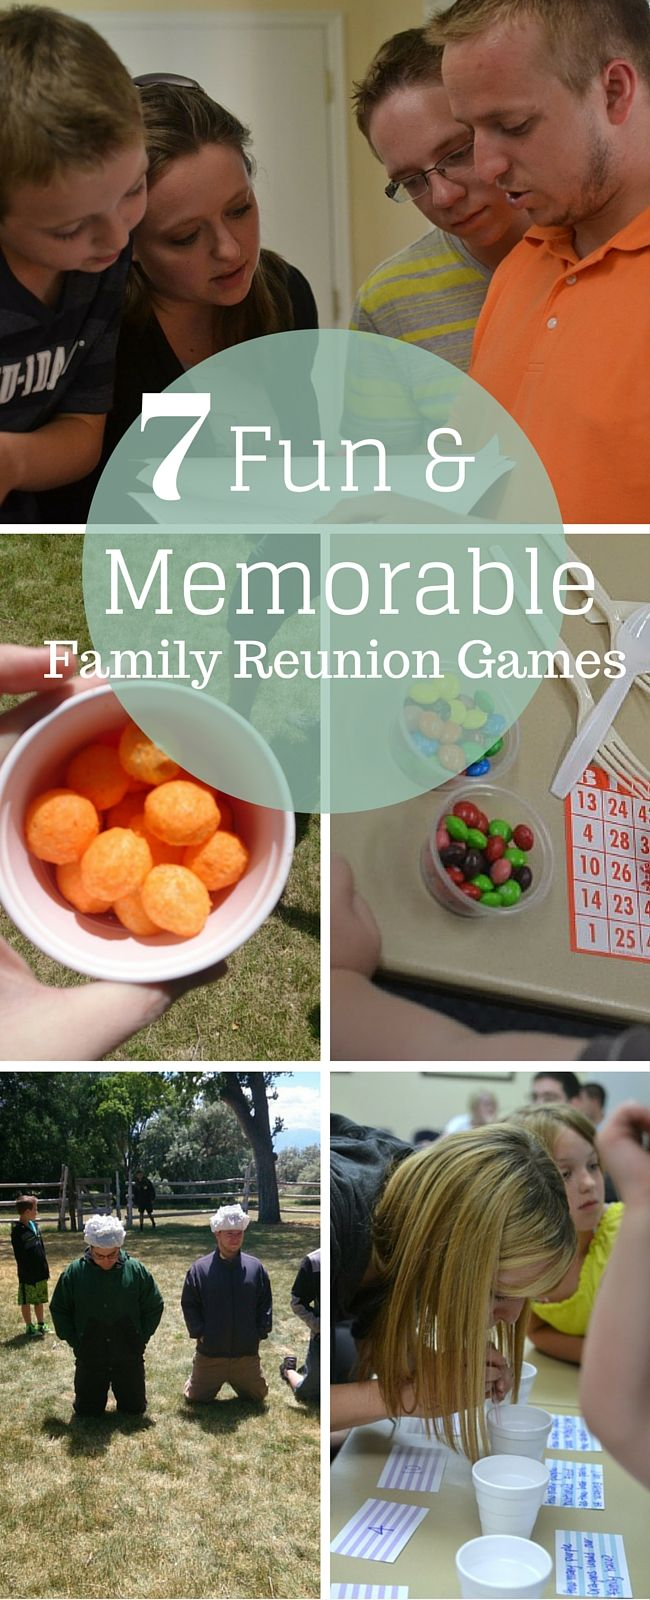 Games for adults family reunions